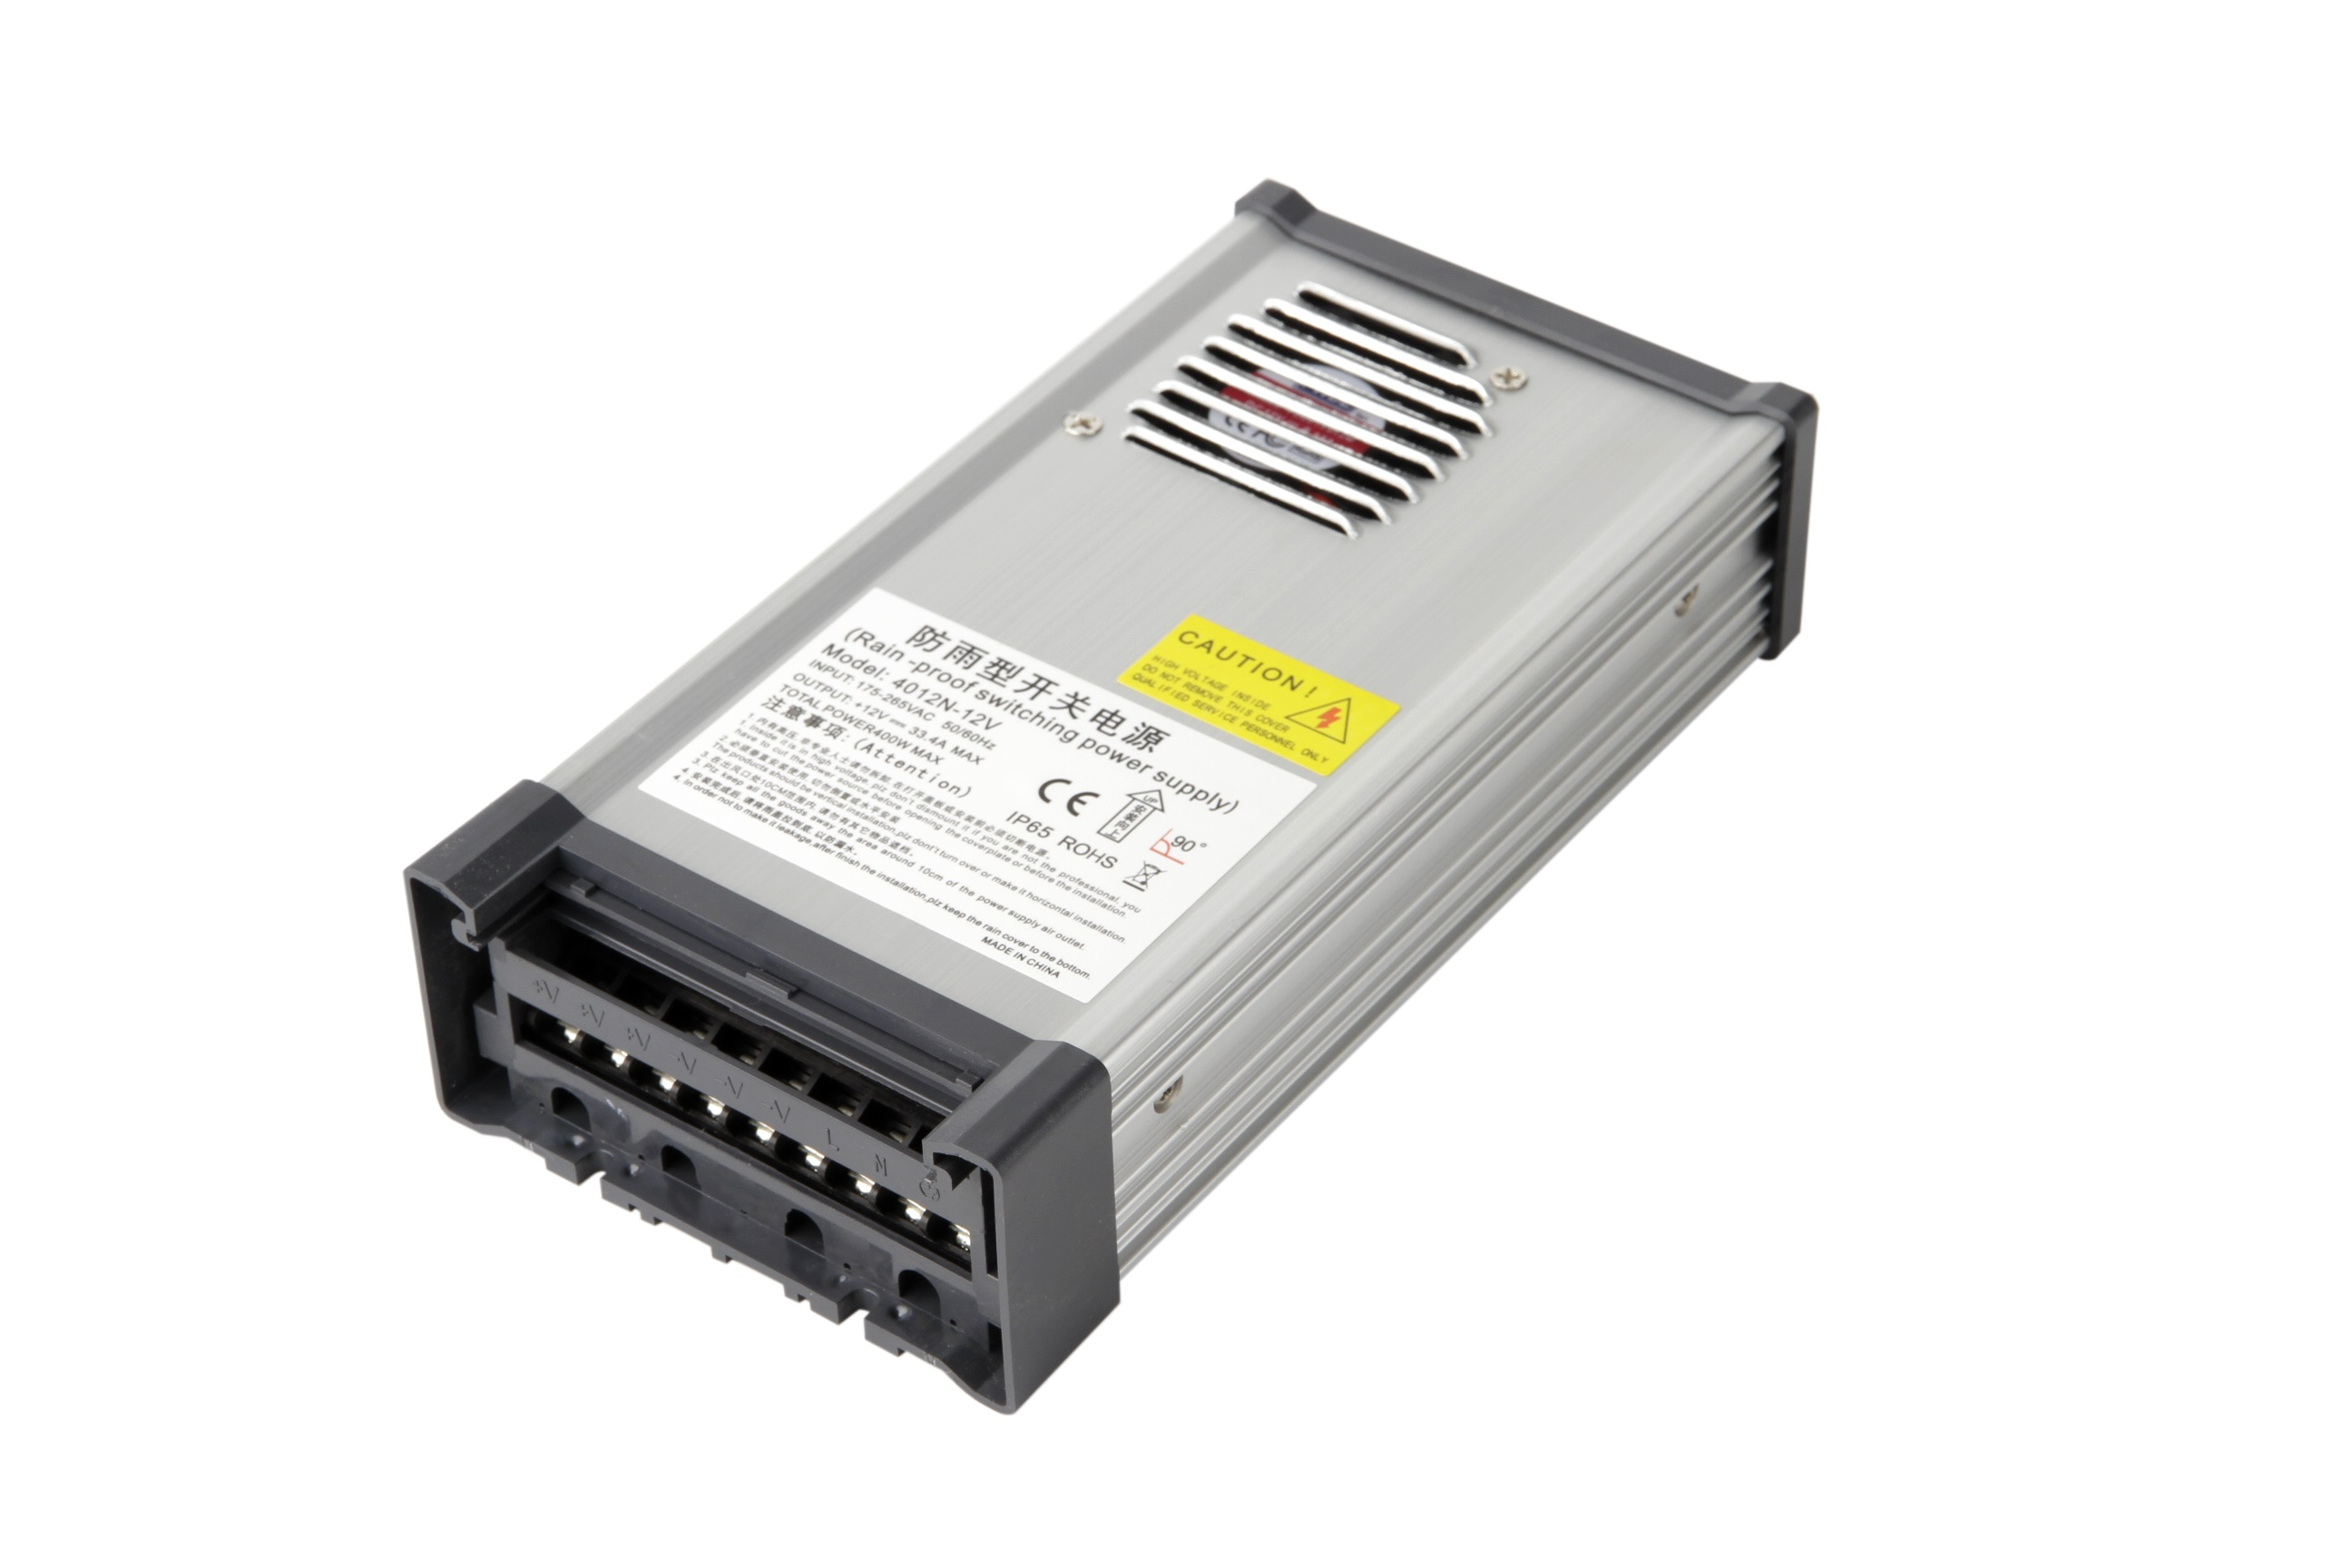 PLV200(200W)